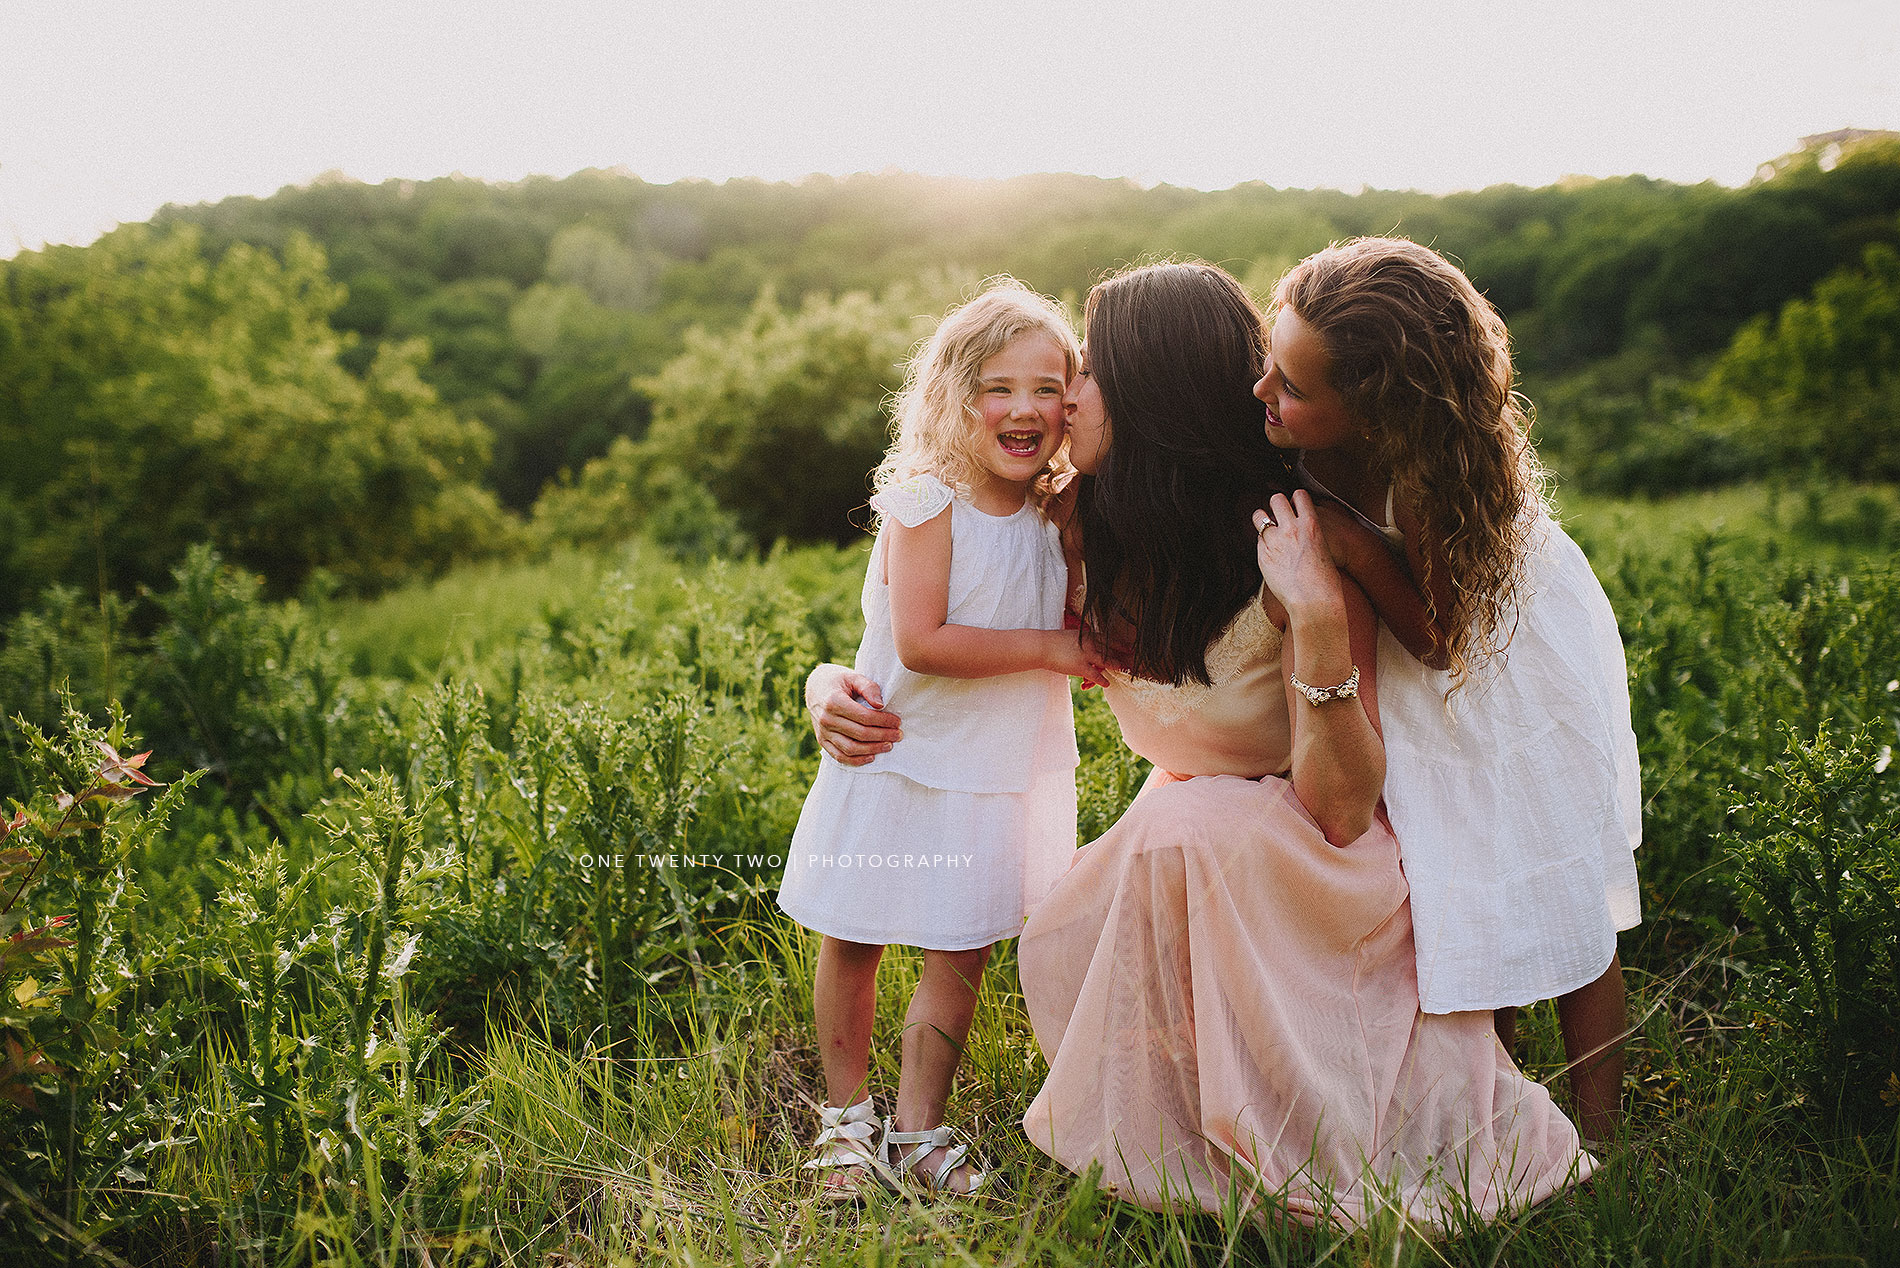 ladue-missouri-mom-and-young-daughters-in-summer-field-one-twenty-two-photography.jpg